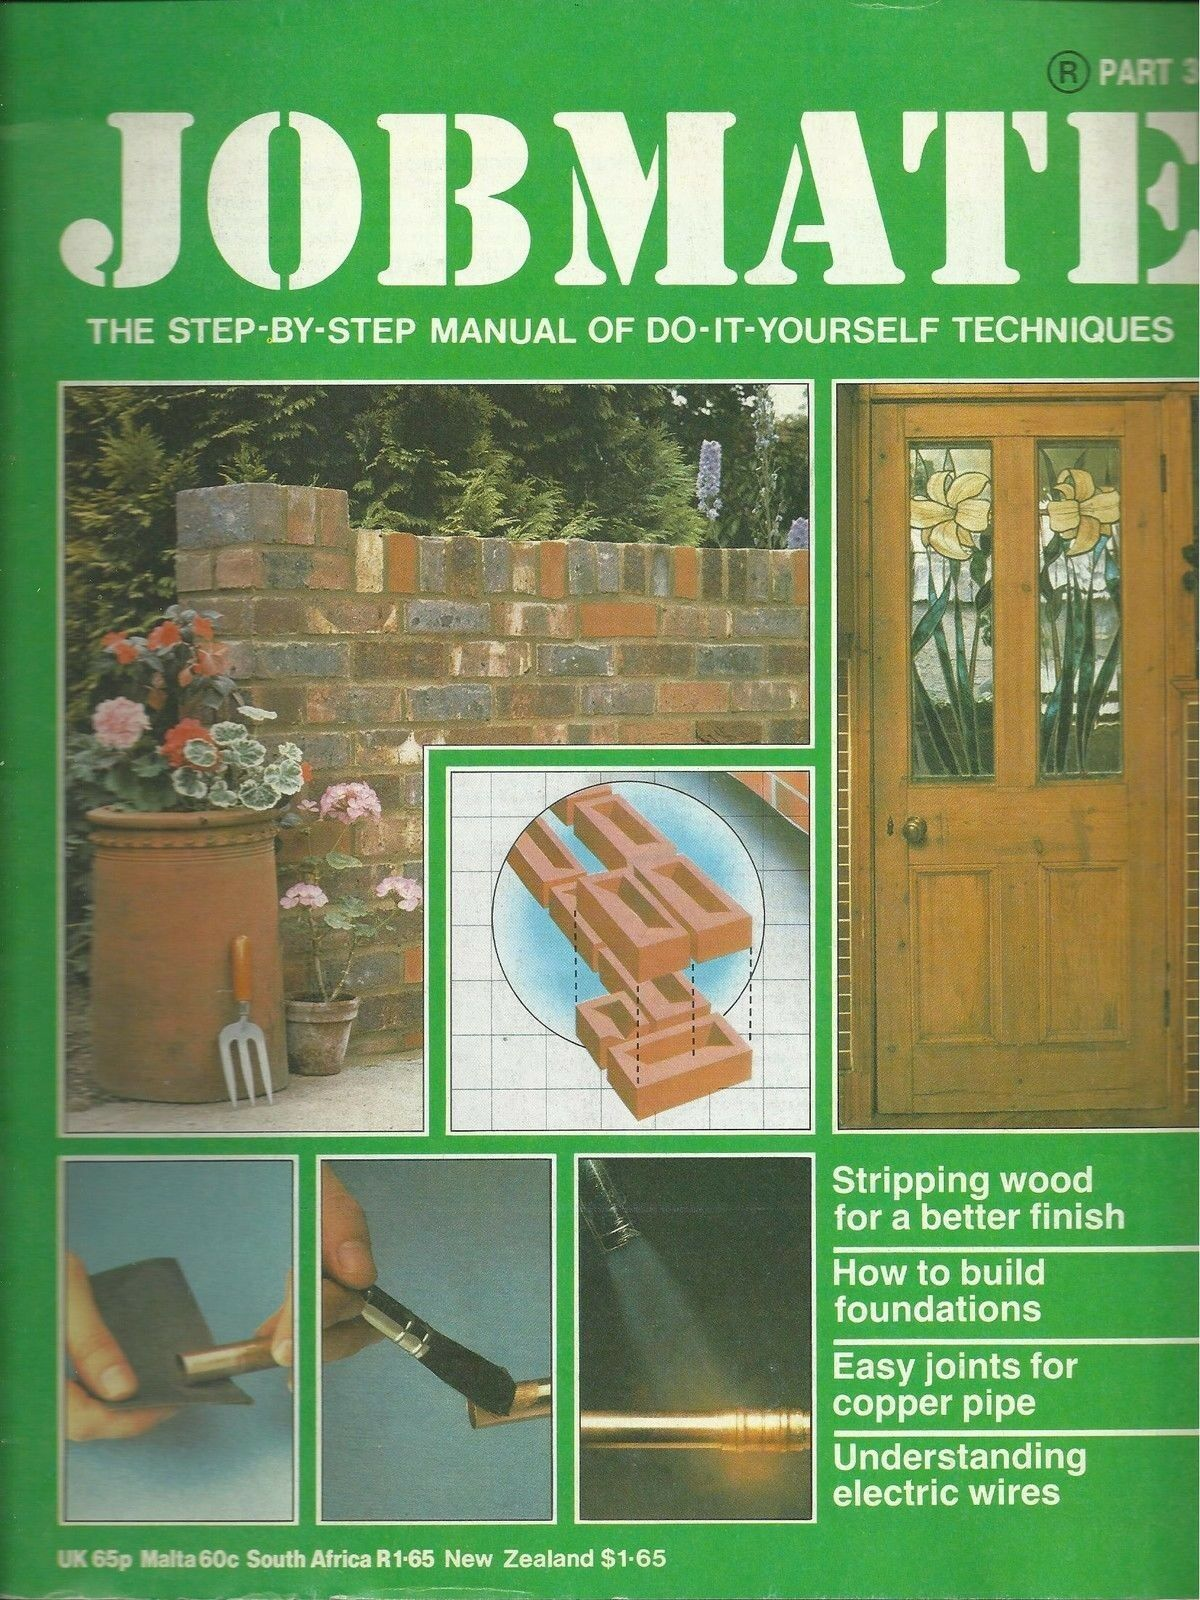 Jobmate 3 diy stripping wood foundations copper etc 199 jobmate 3 diy stripping wood foundations copper etc 1 of 1only 1 available see more solutioingenieria Image collections